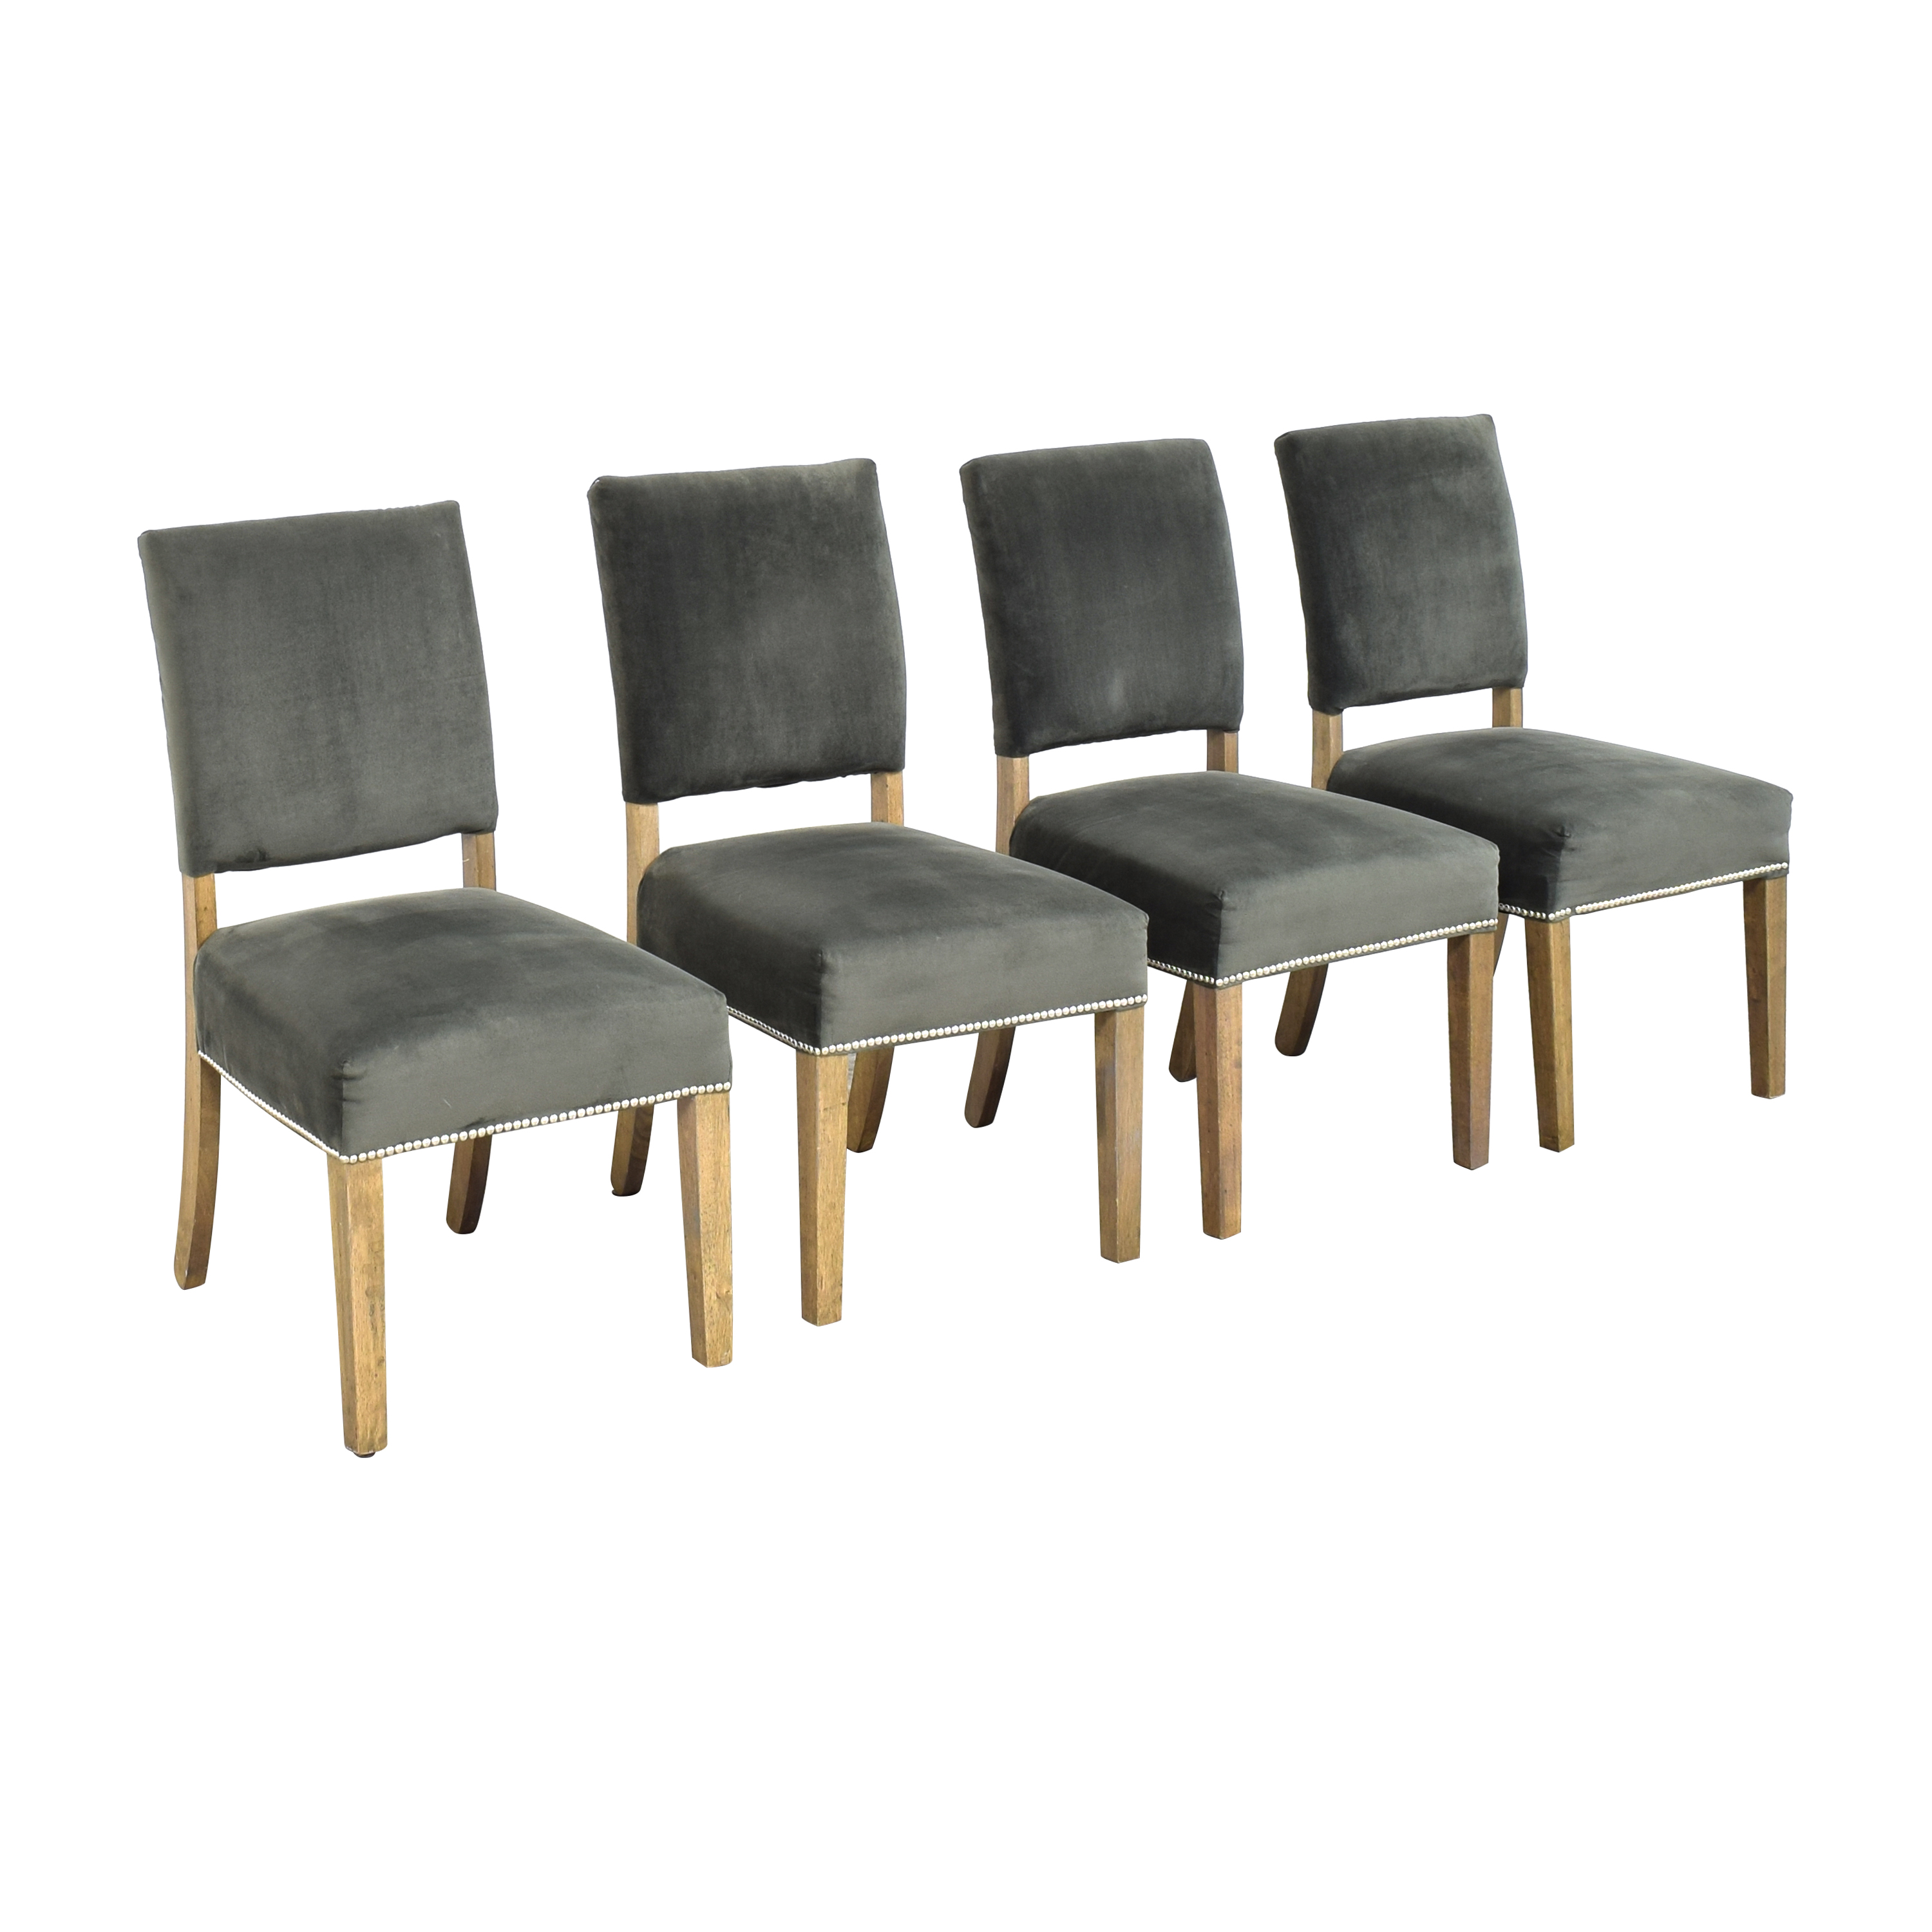 buy  Upholstered Dining Chairs online